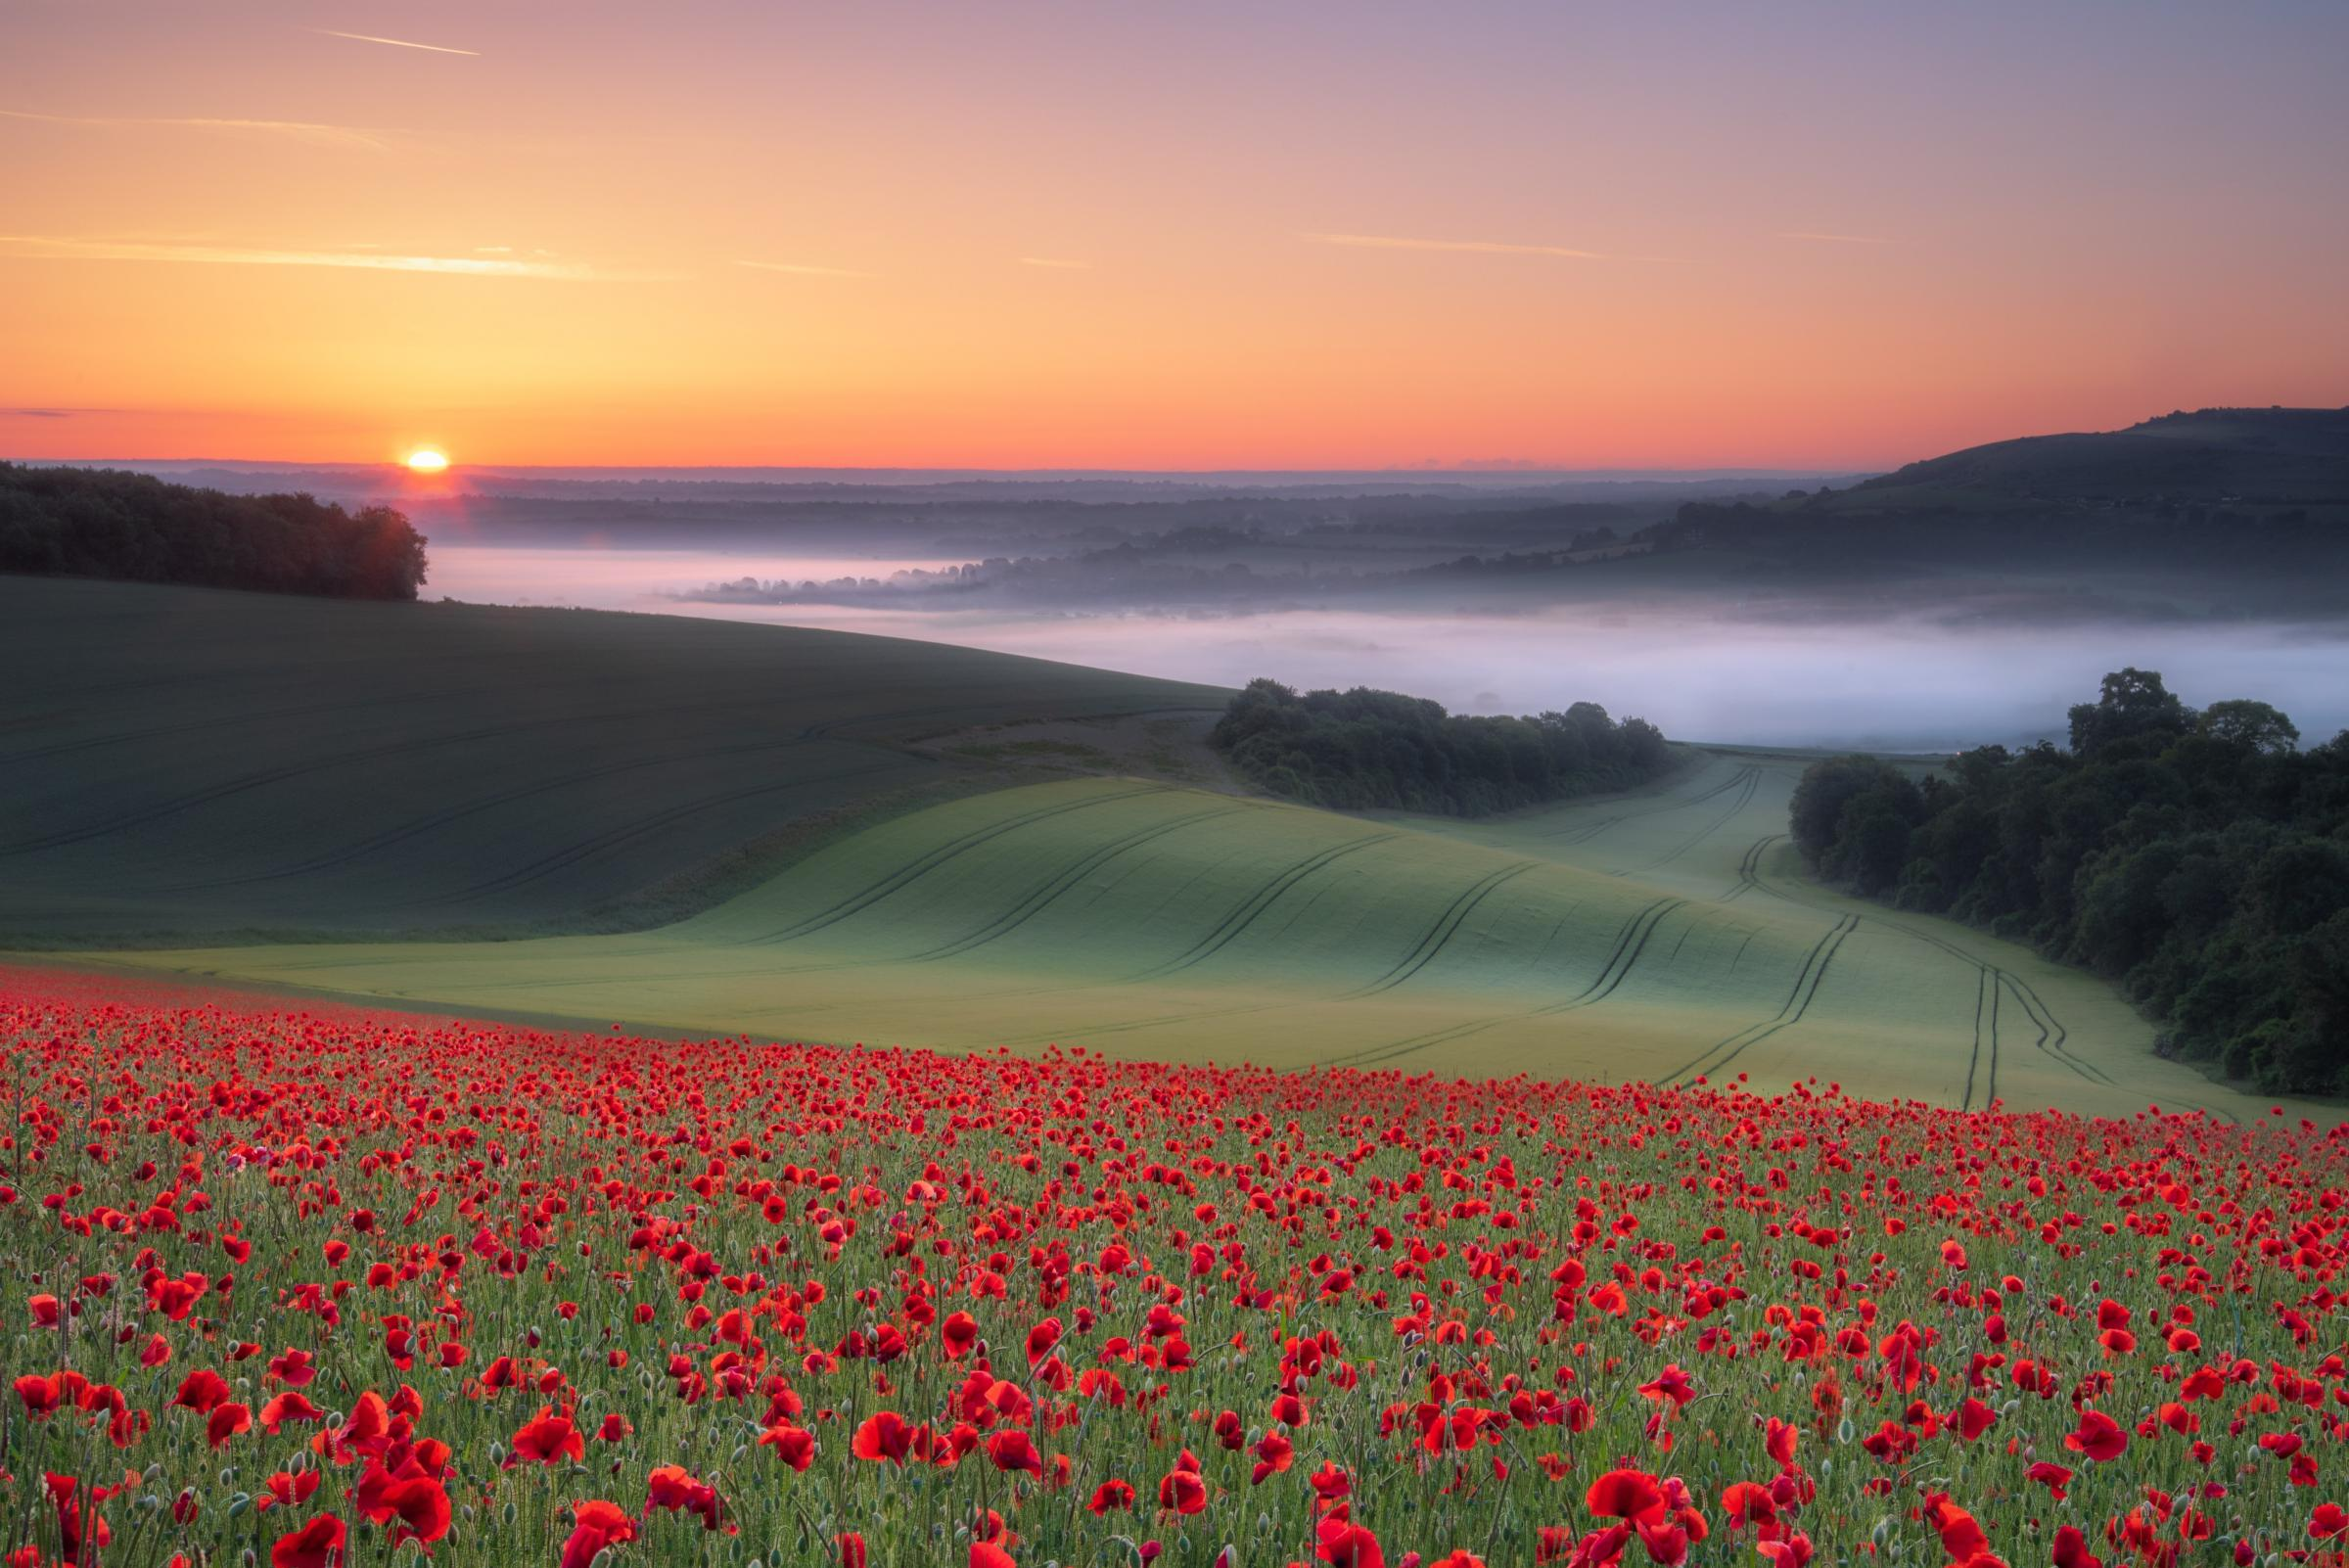 Jamie Fielding's image of a poppy field, called South Downs Sunrise